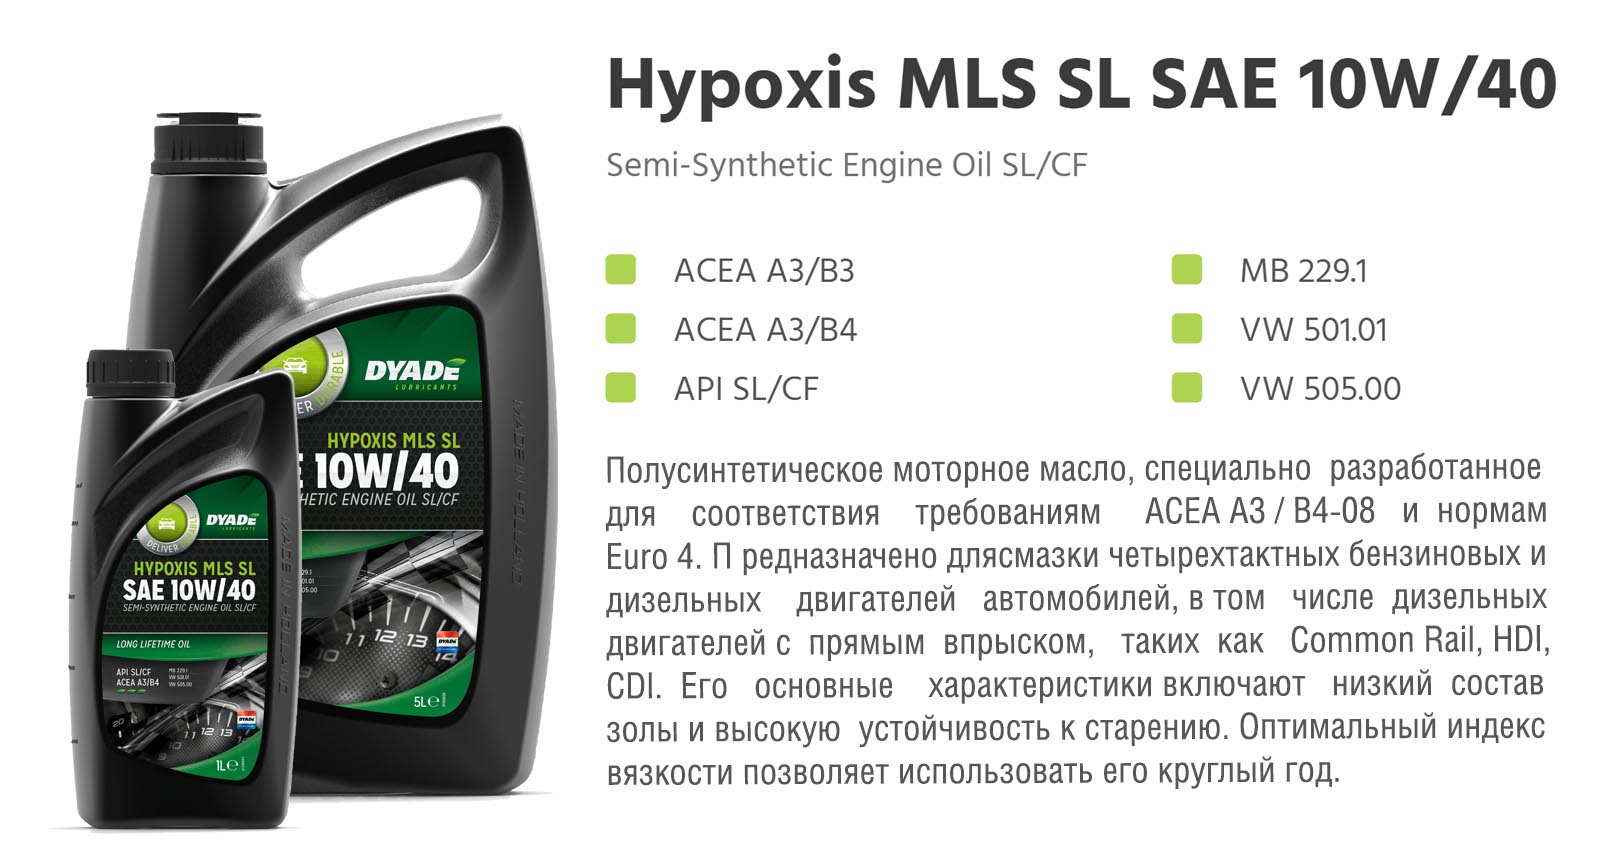 Масло моторное Hypoxis MLS SL SAE 10W/40 (1L) VW501 00/505 00 MB 229.1